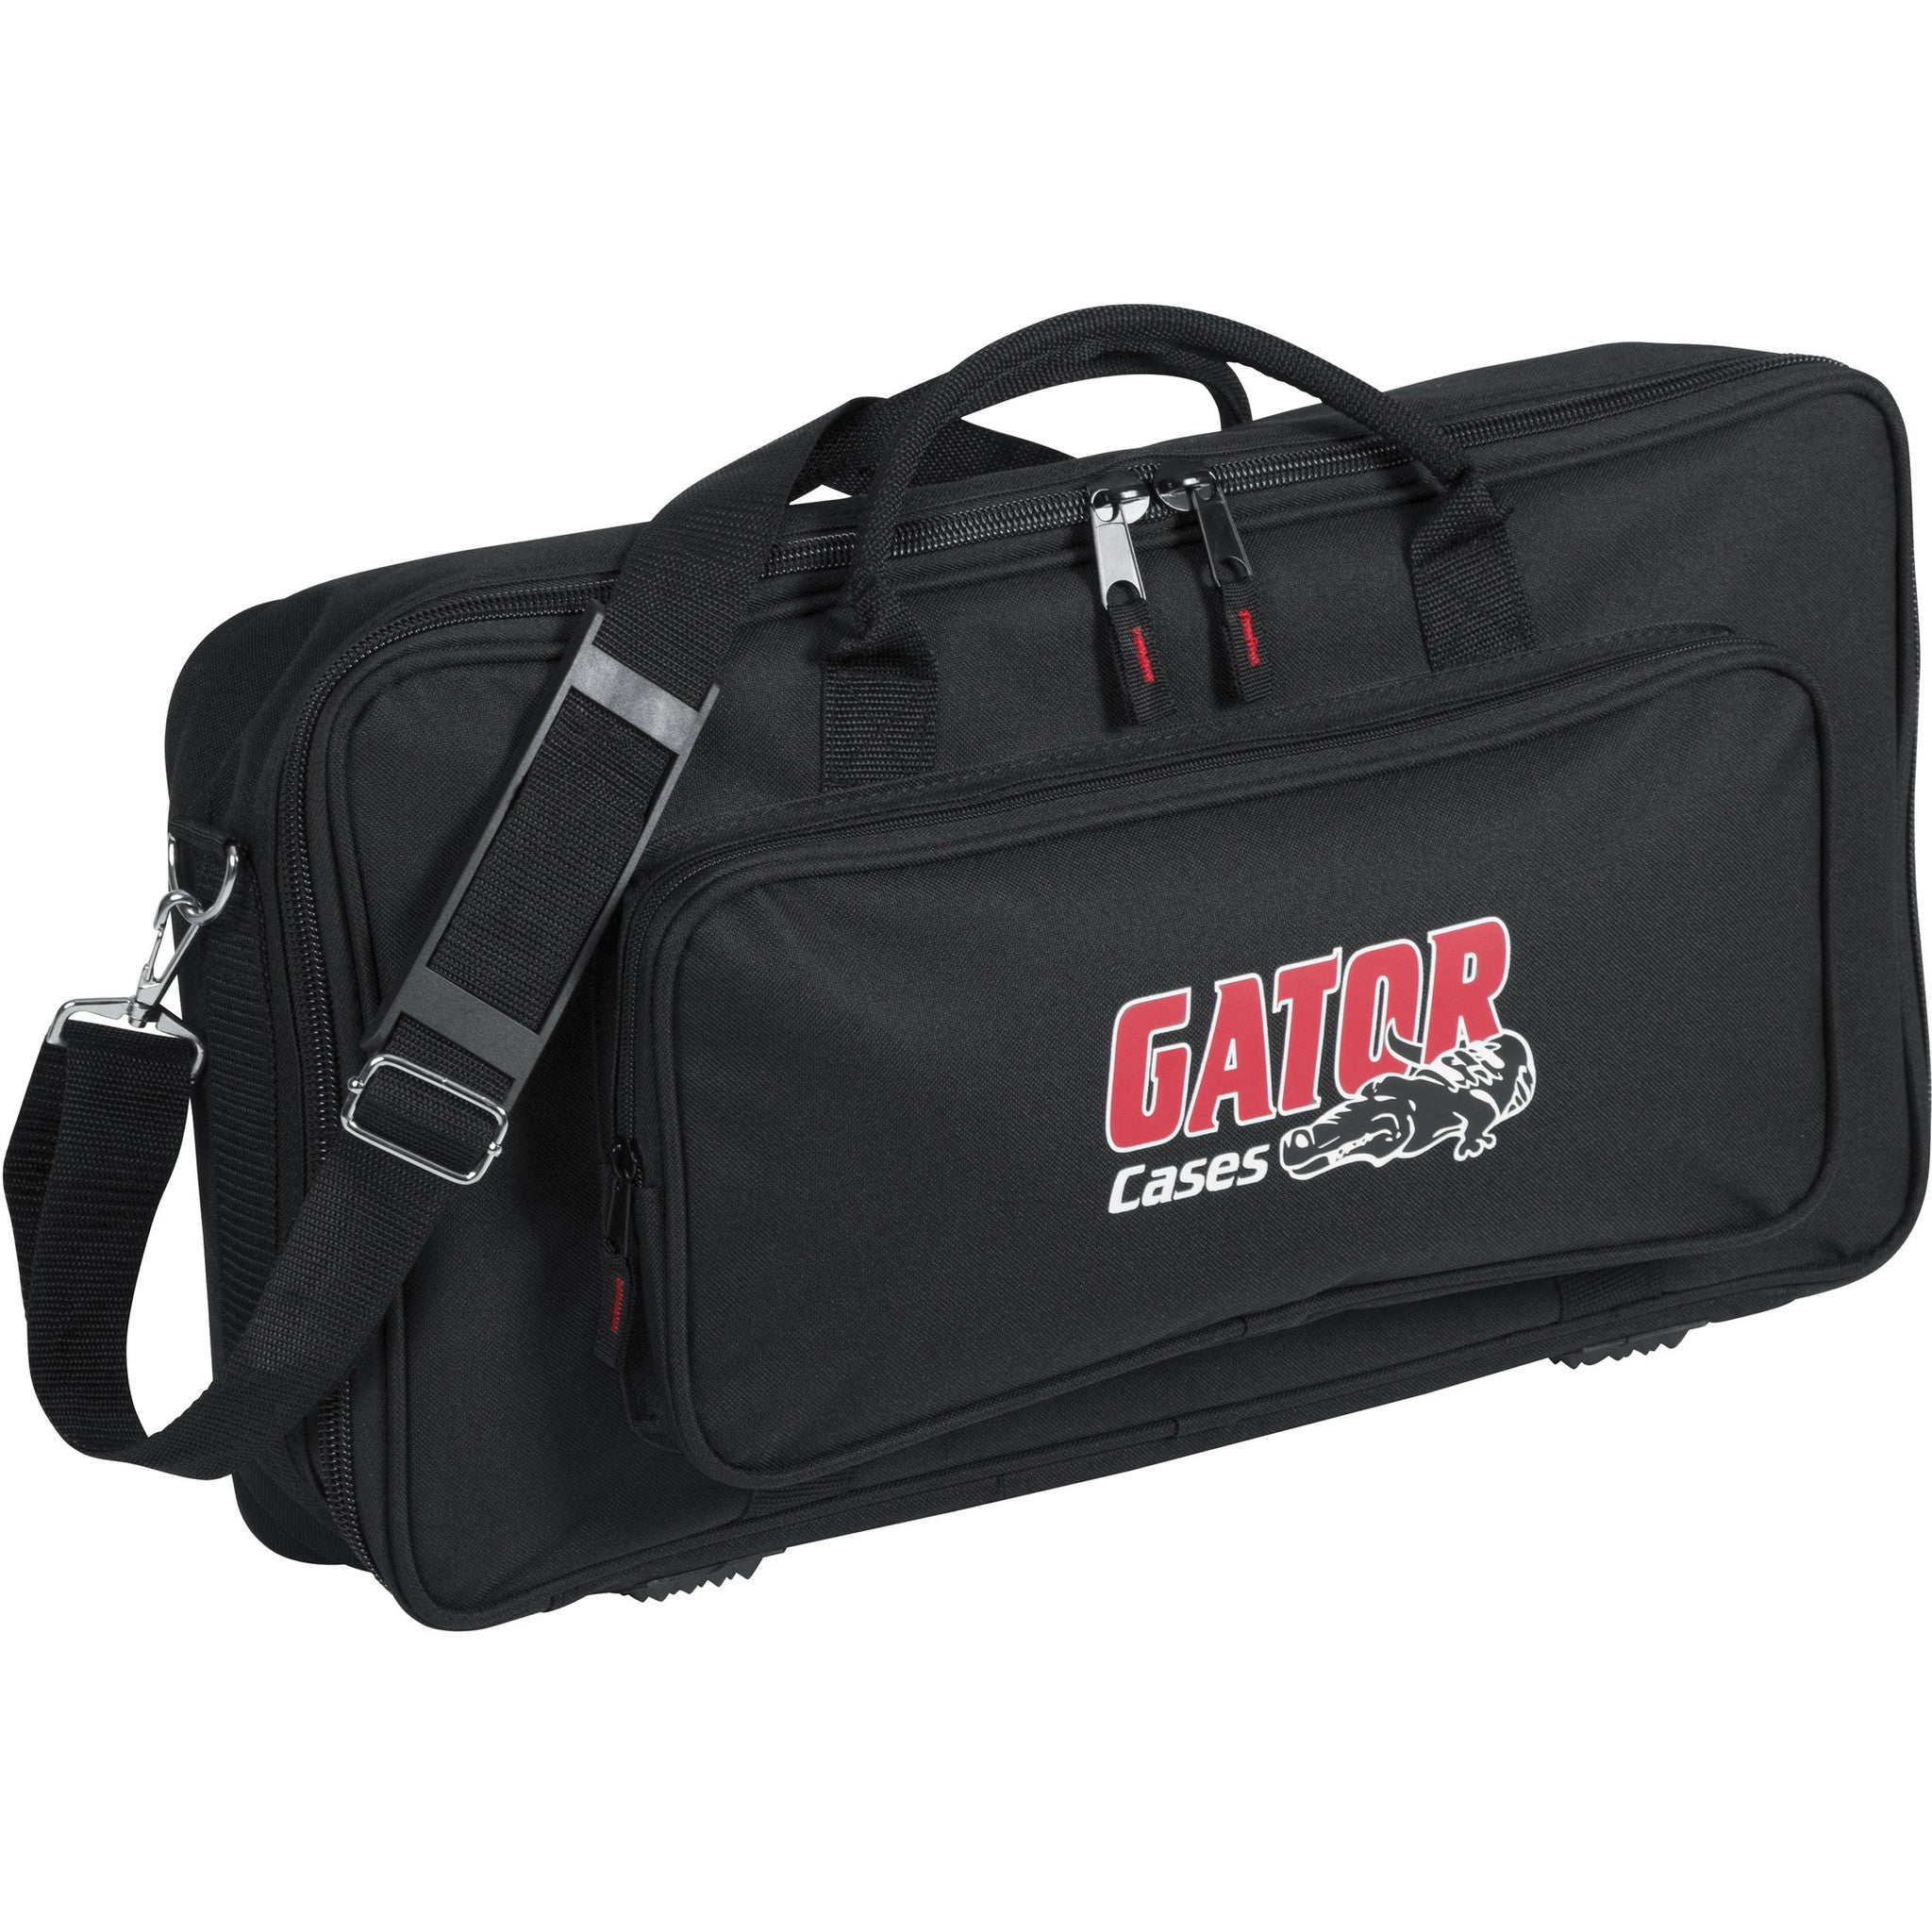 Gator Cases GK-2110 Gig Bag - for Micro Keyboards, Various Audio Mixers, Guitar Multi-Effects Processors or Pro DJ Mixers